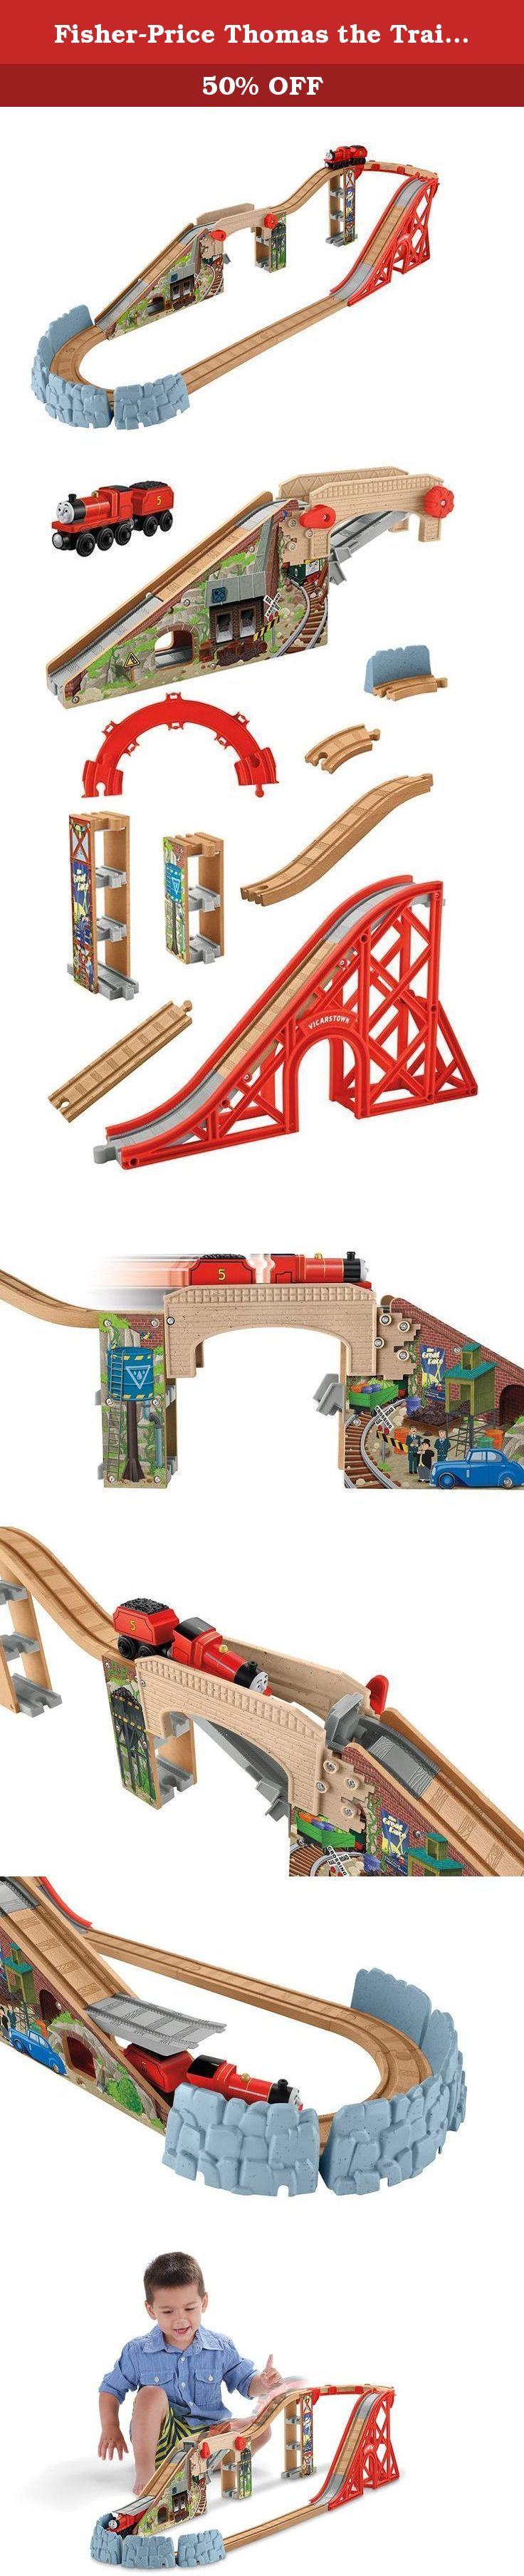 d87a0cfea722 Fisher-Price Thomas the Train Wooden Railway Speedy Surprise Drop Set. It's  the highest